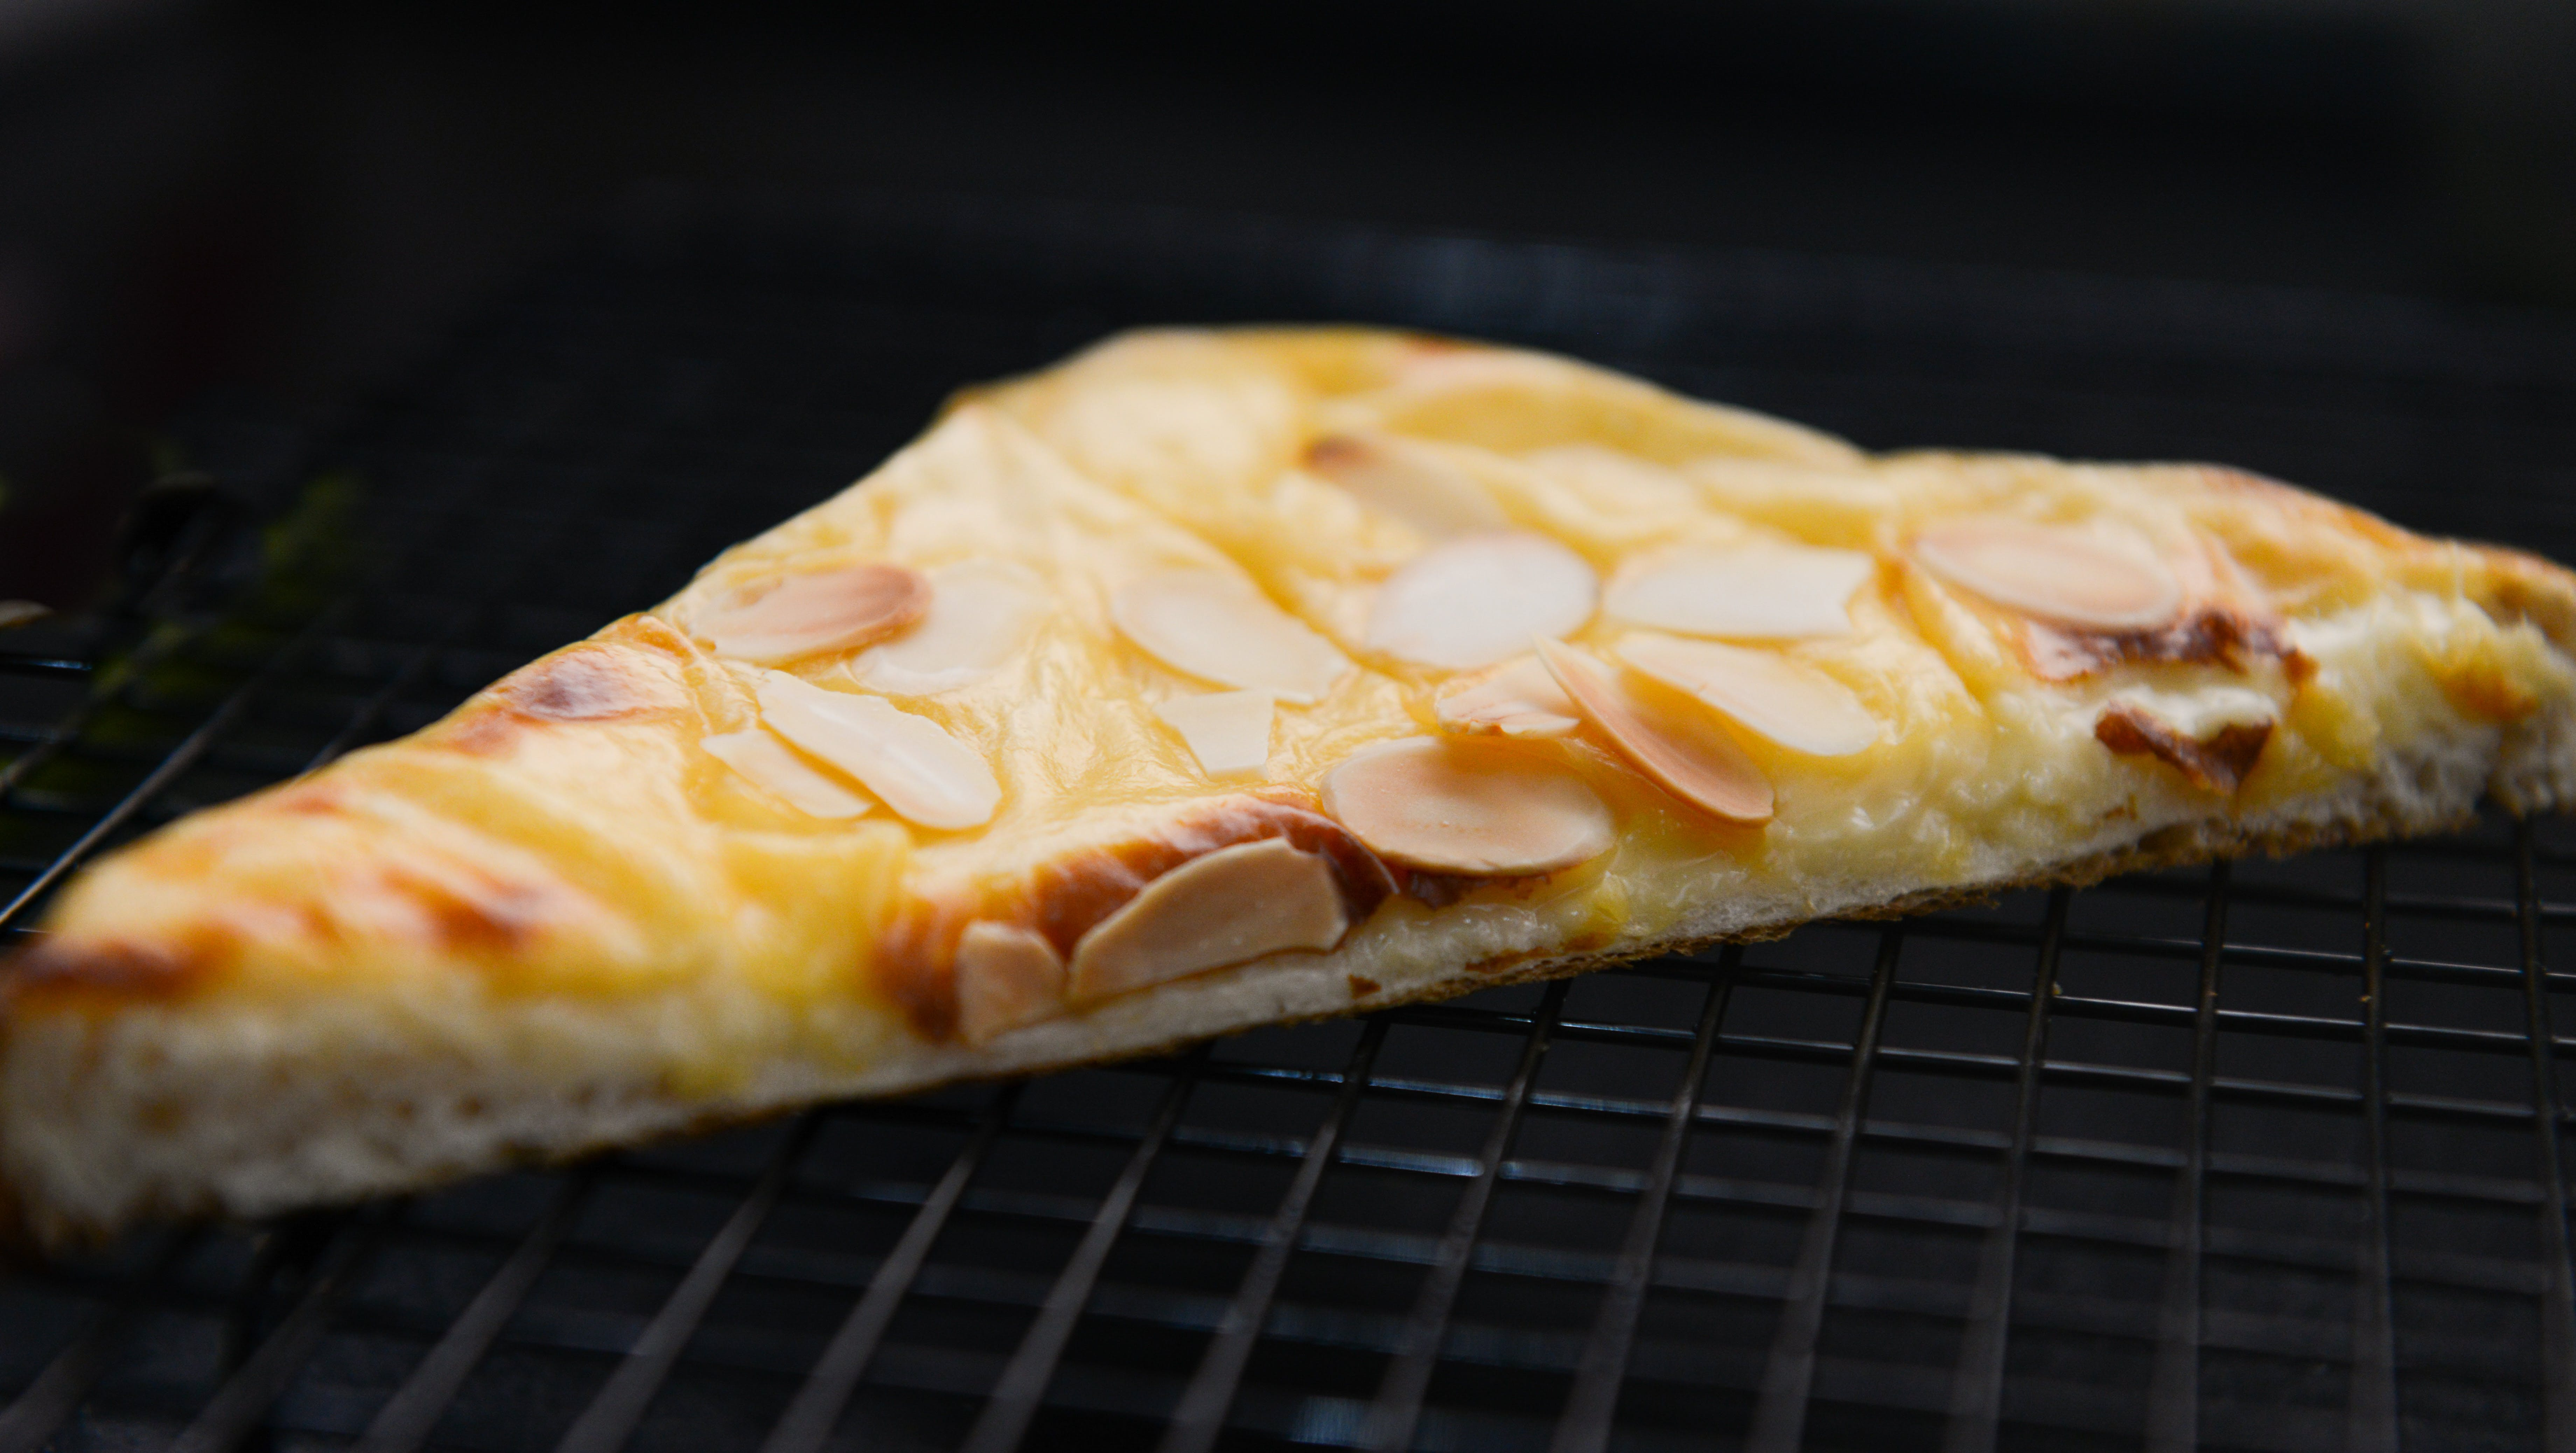 Close-up Photography of Sliced Pizza